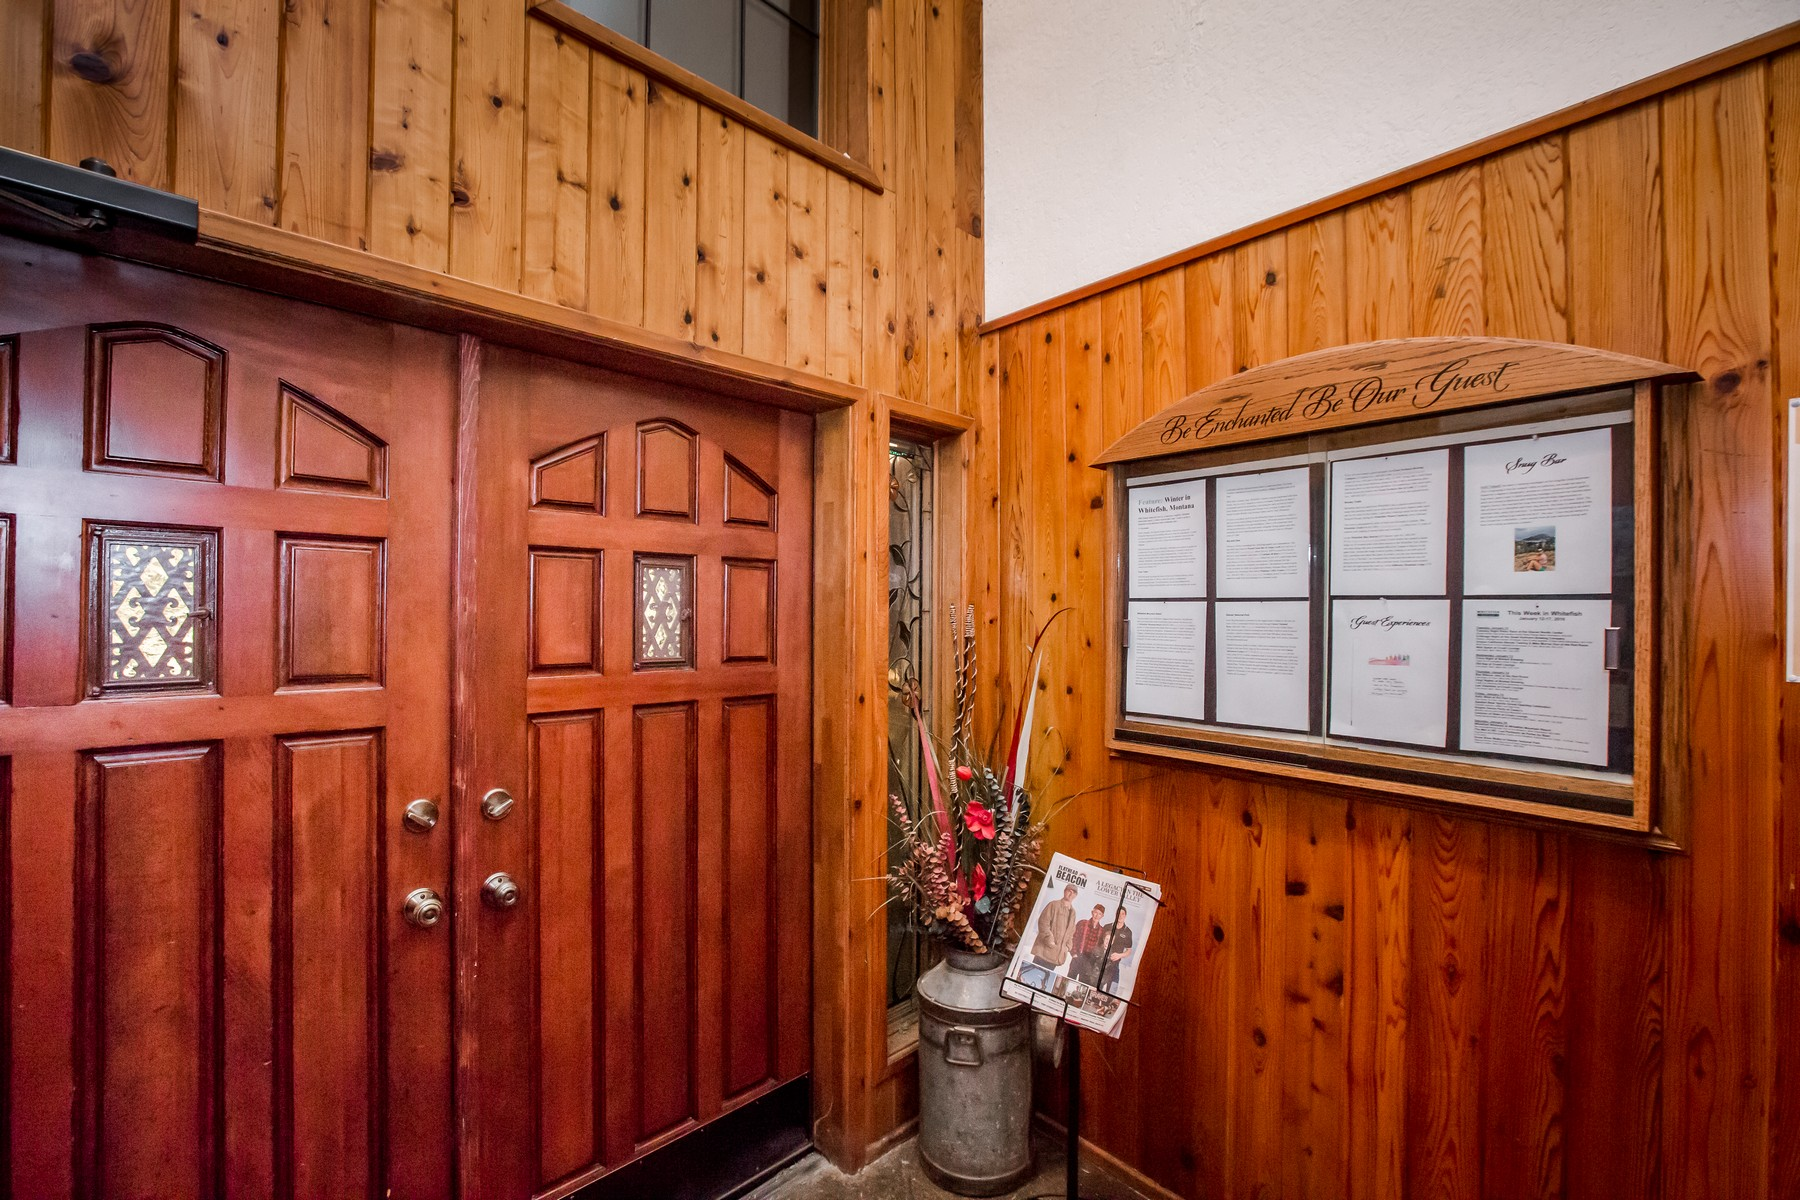 Additional photo for property listing at 3824 Big Mountain Road, Unit 305, Whitefish, MT 59 3824  Big Mountain Rd Unit 305 Whitefish, Montana 59937 United States